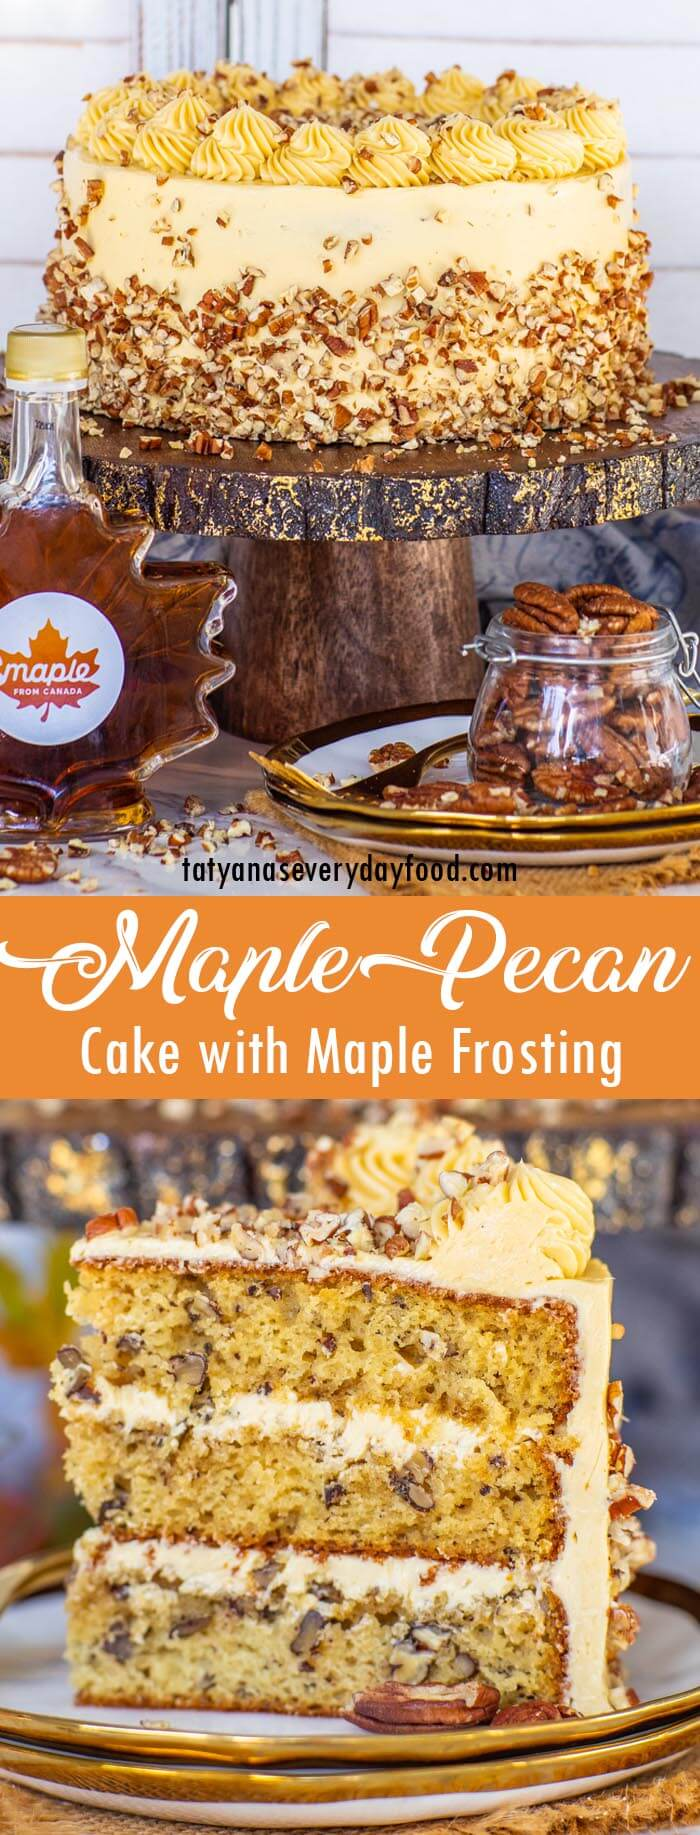 Maple Pecan Cake with Maple Buttercream video recipe